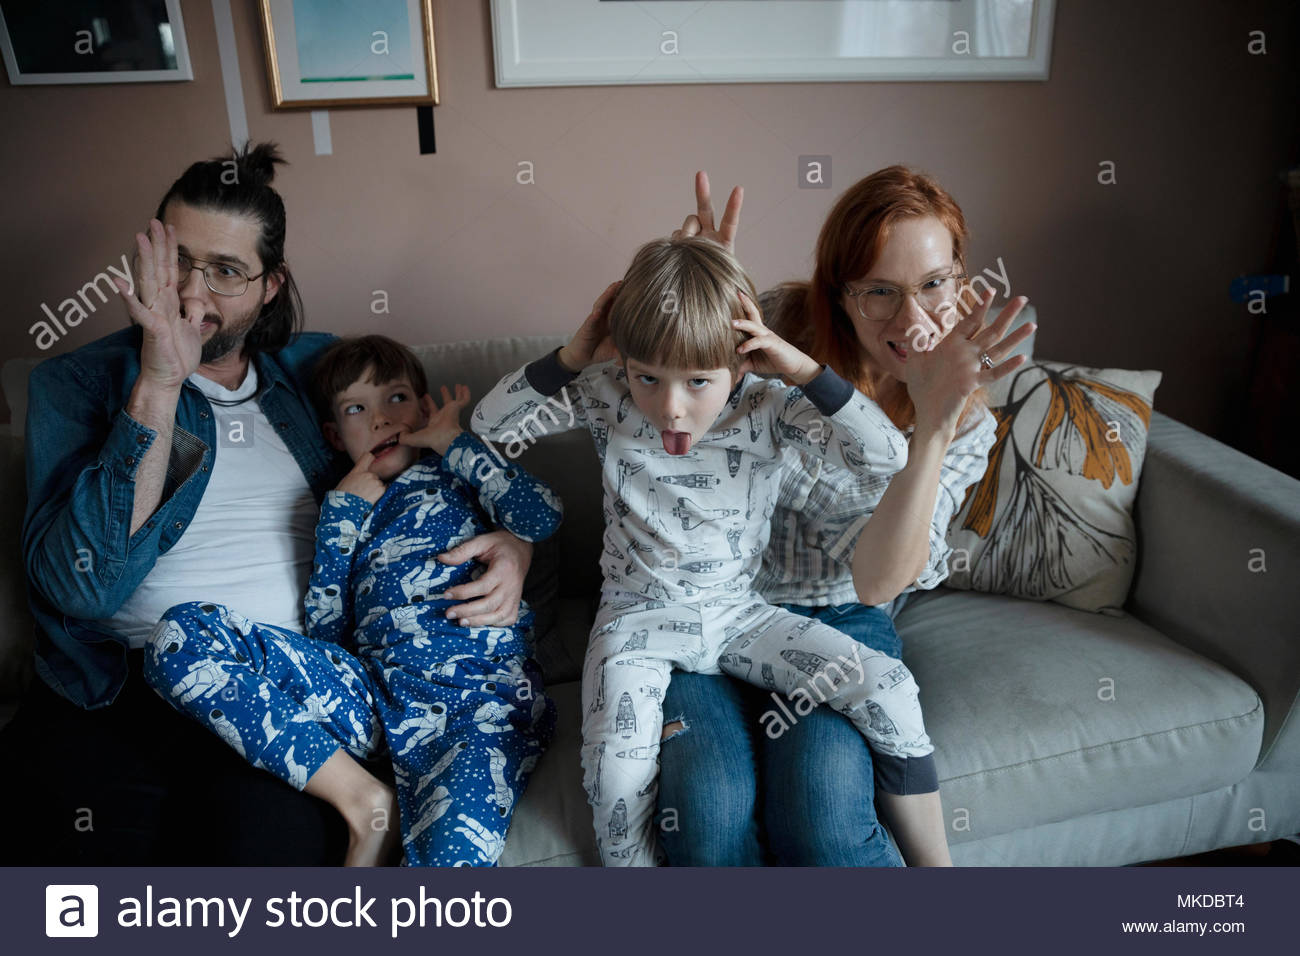 Portrait playful family making faces, gesturing on living room sofa - Stock Image